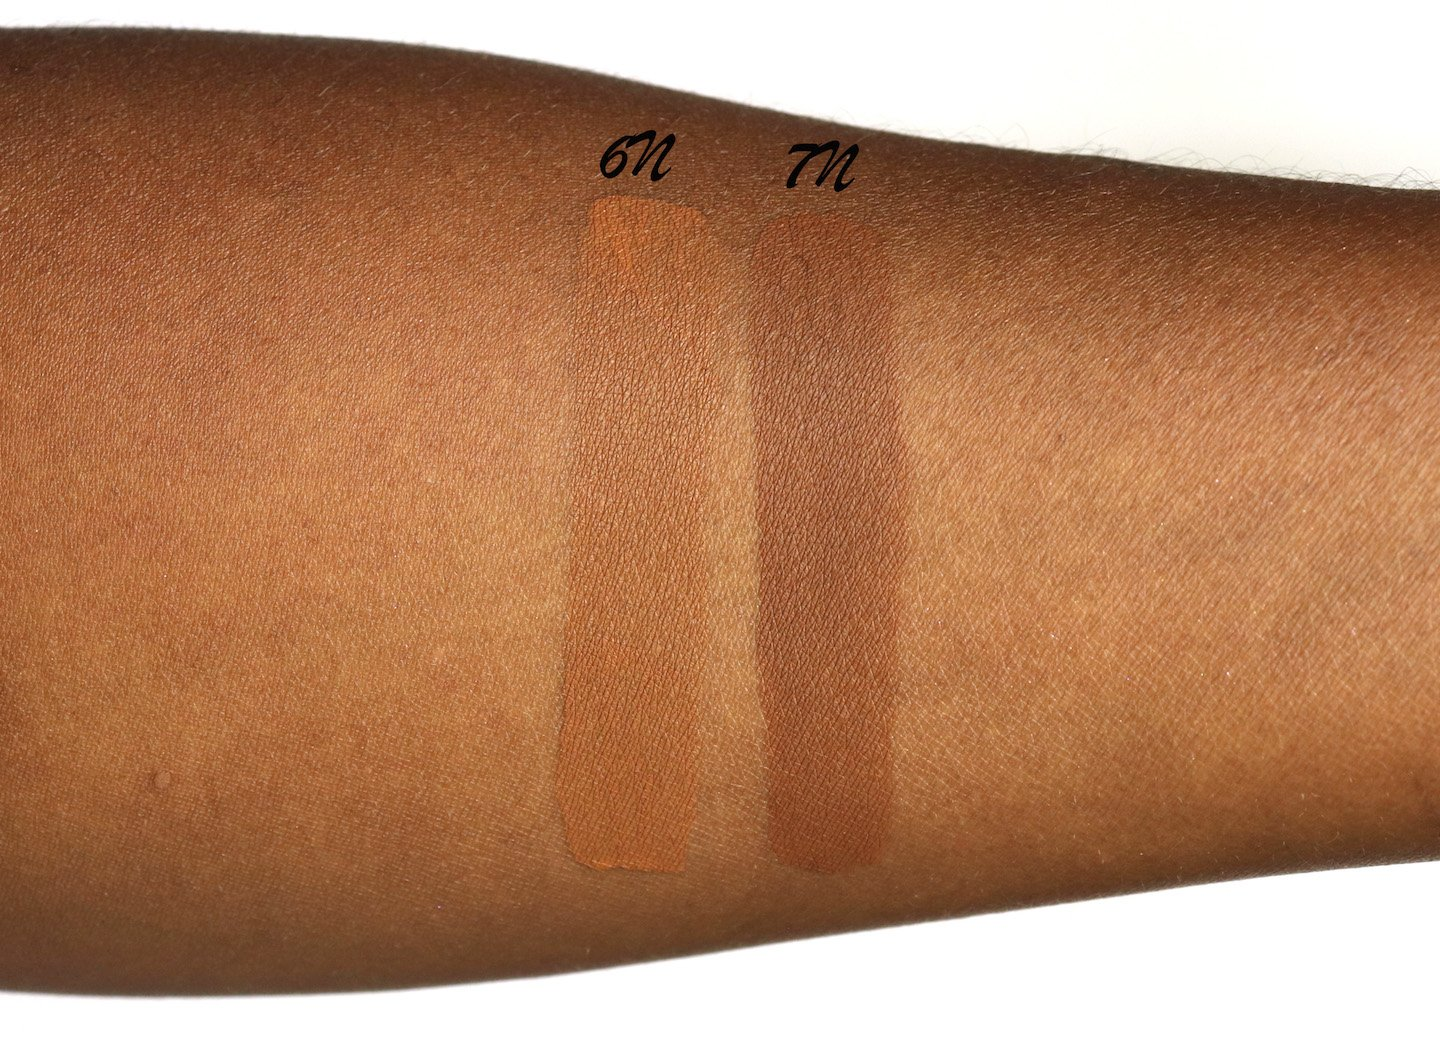 Dior Face & Body Foundation 6N & 7N Swatches